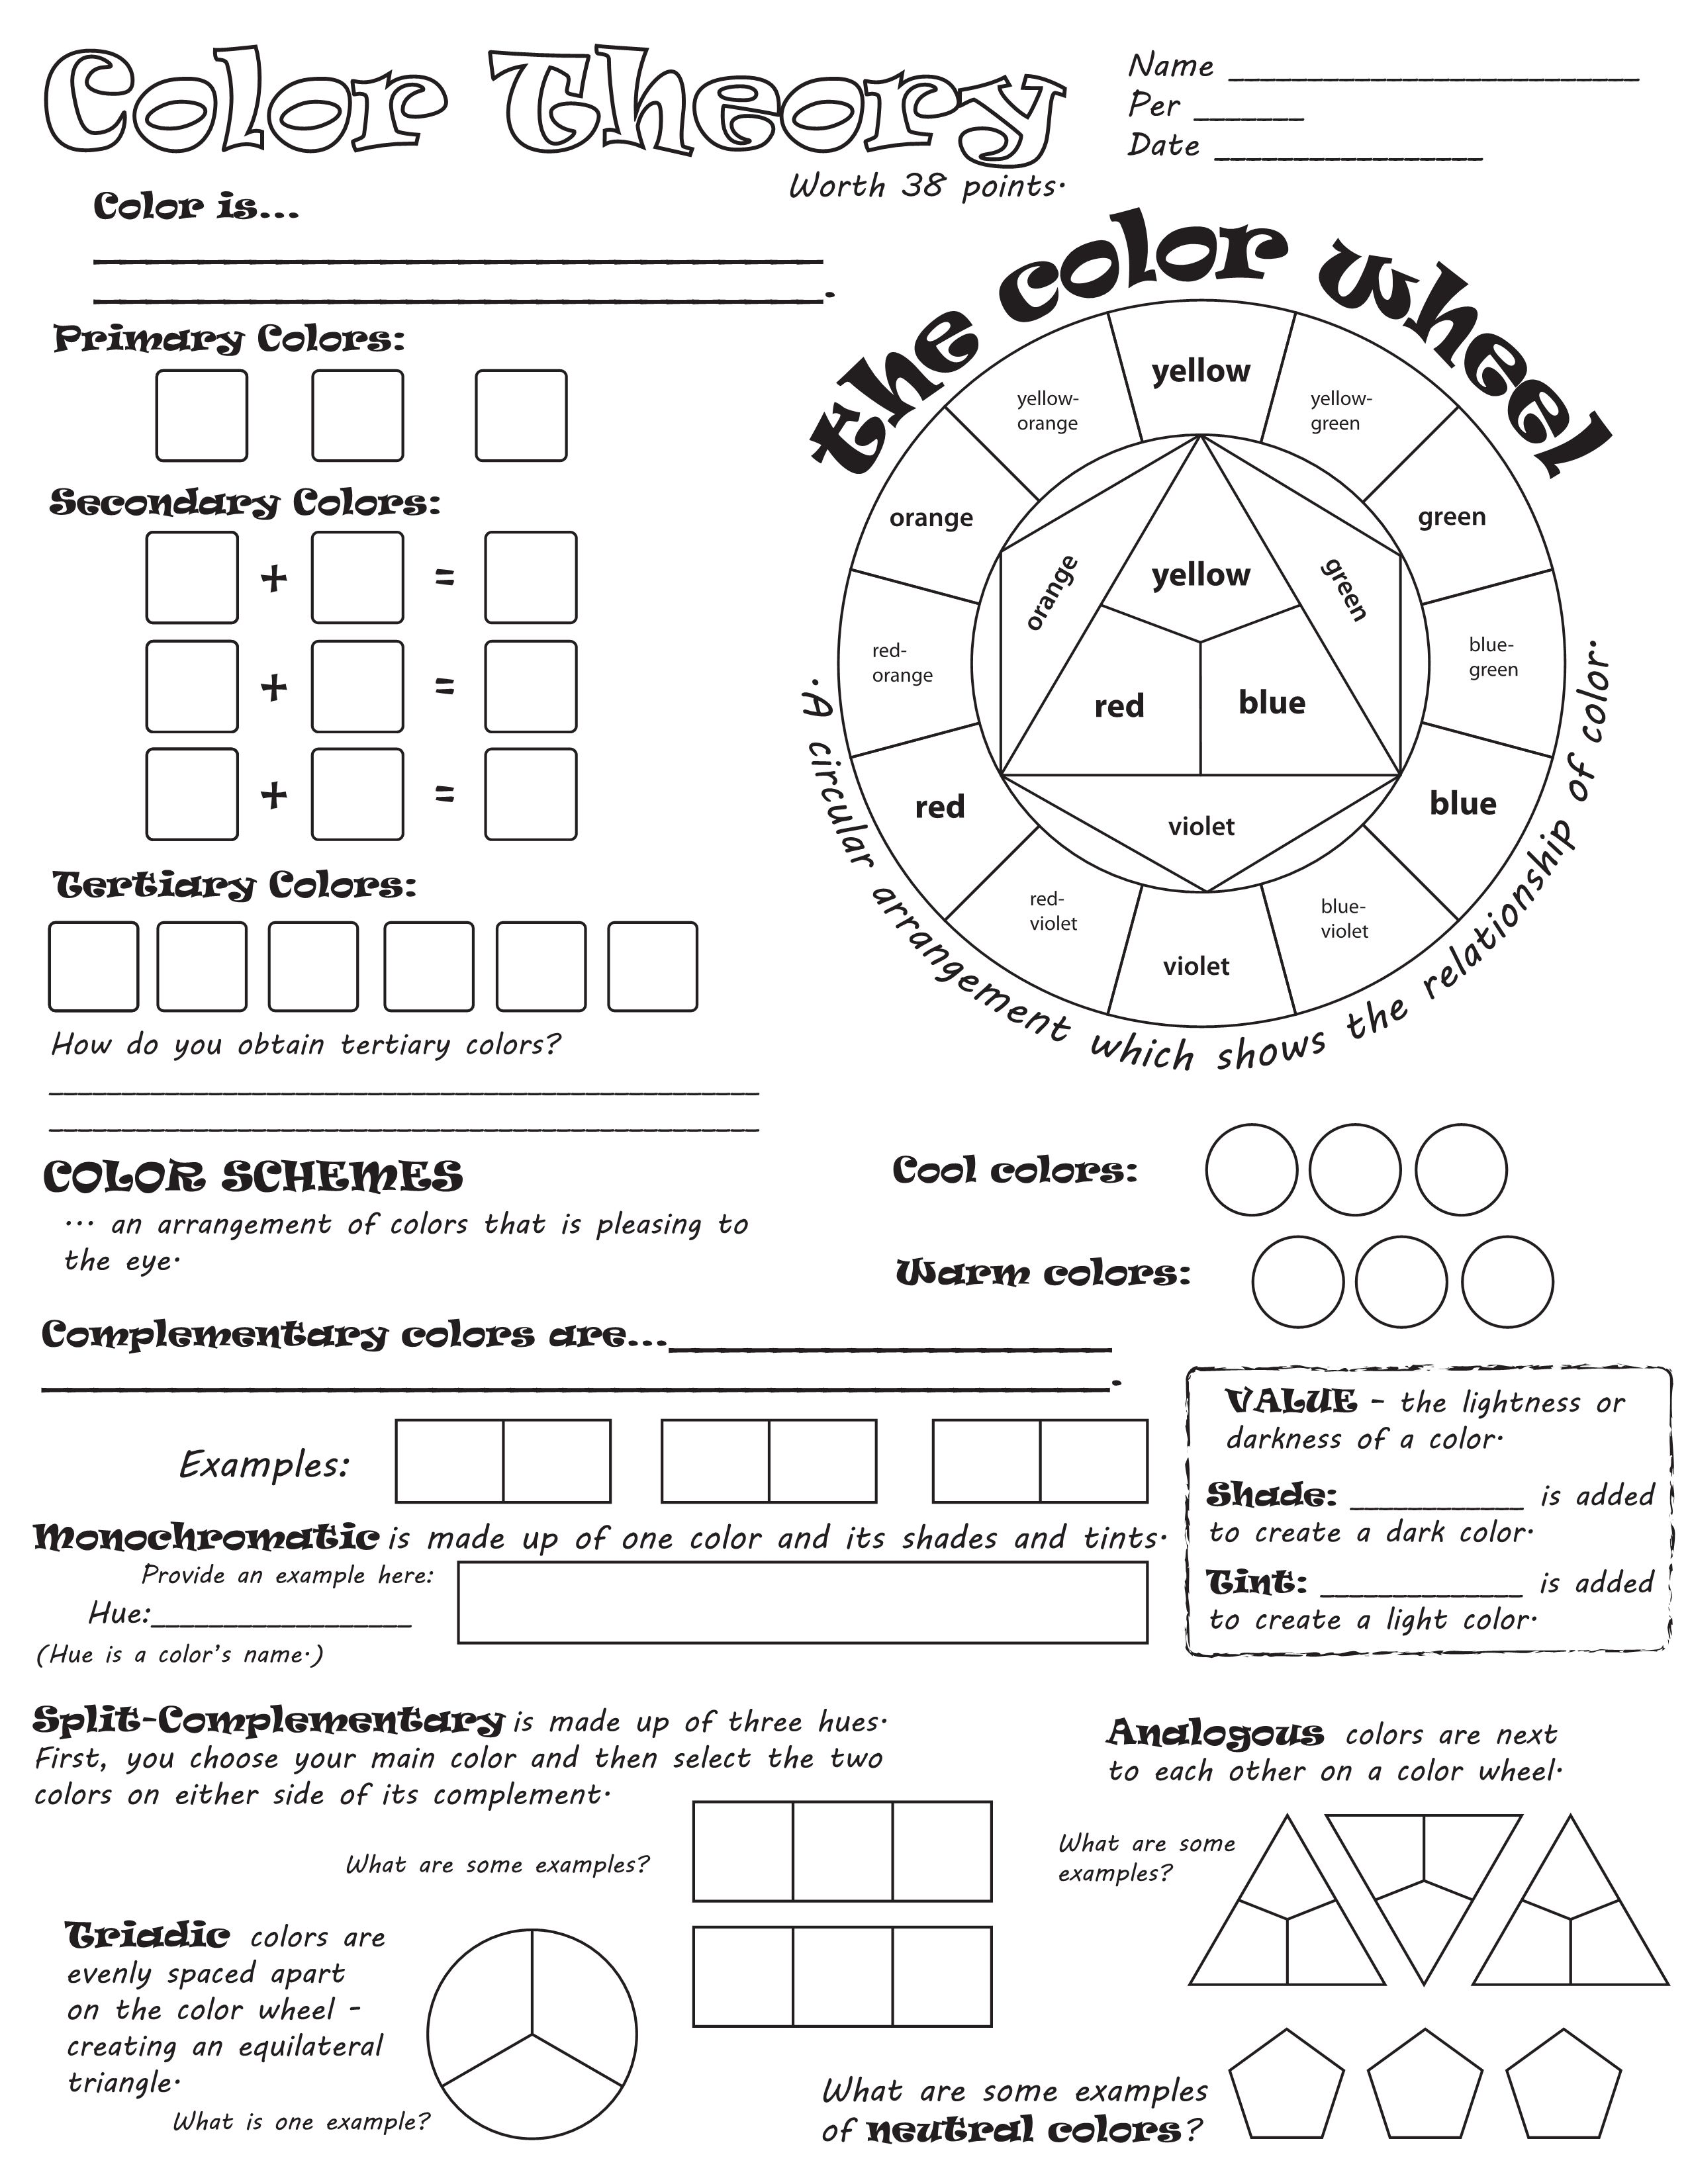 worksheet Art education lessons, Elements of art color